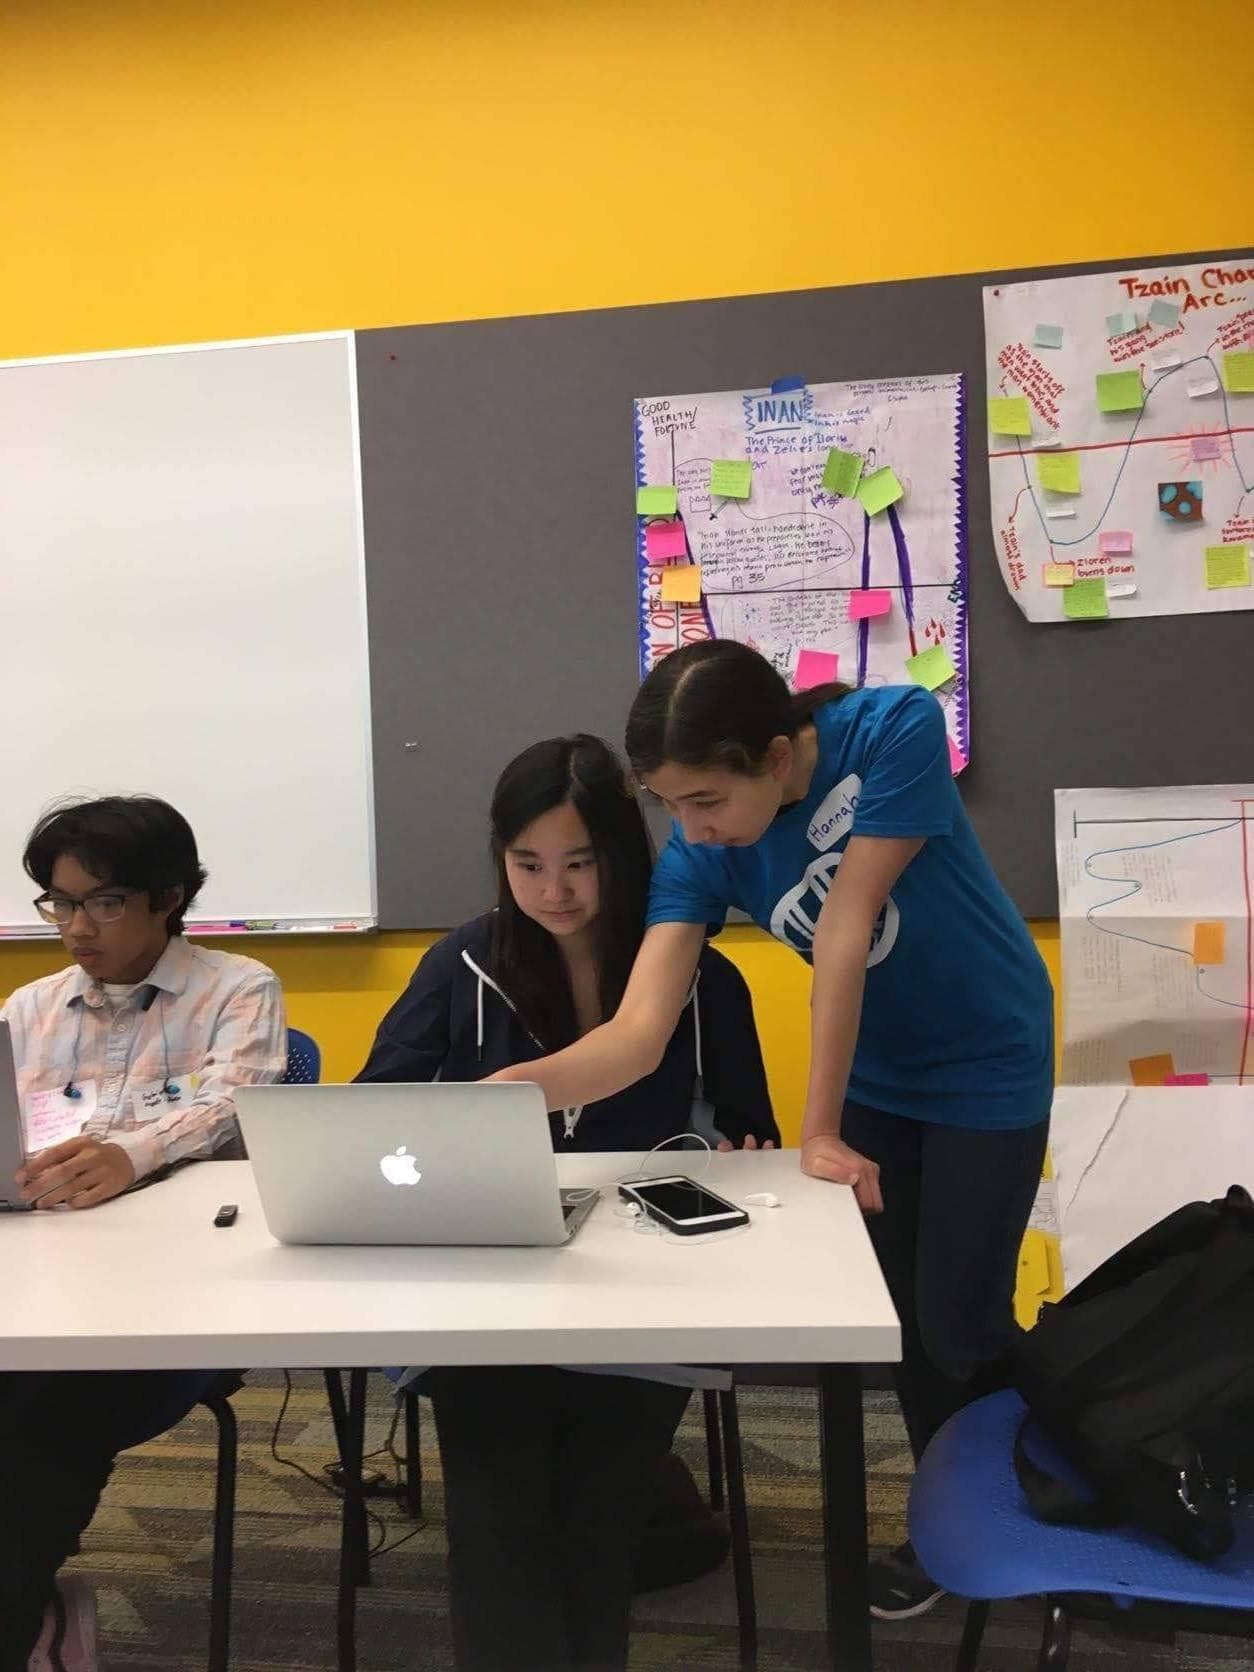 Hyphen-Hacks Mentor helping a student